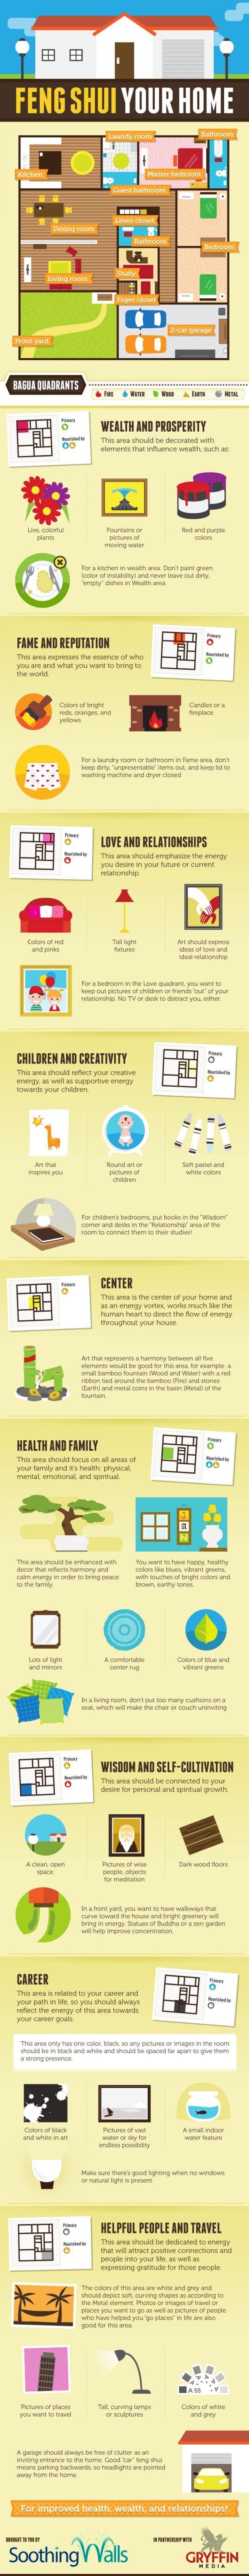 Feng Shui Home Infographic